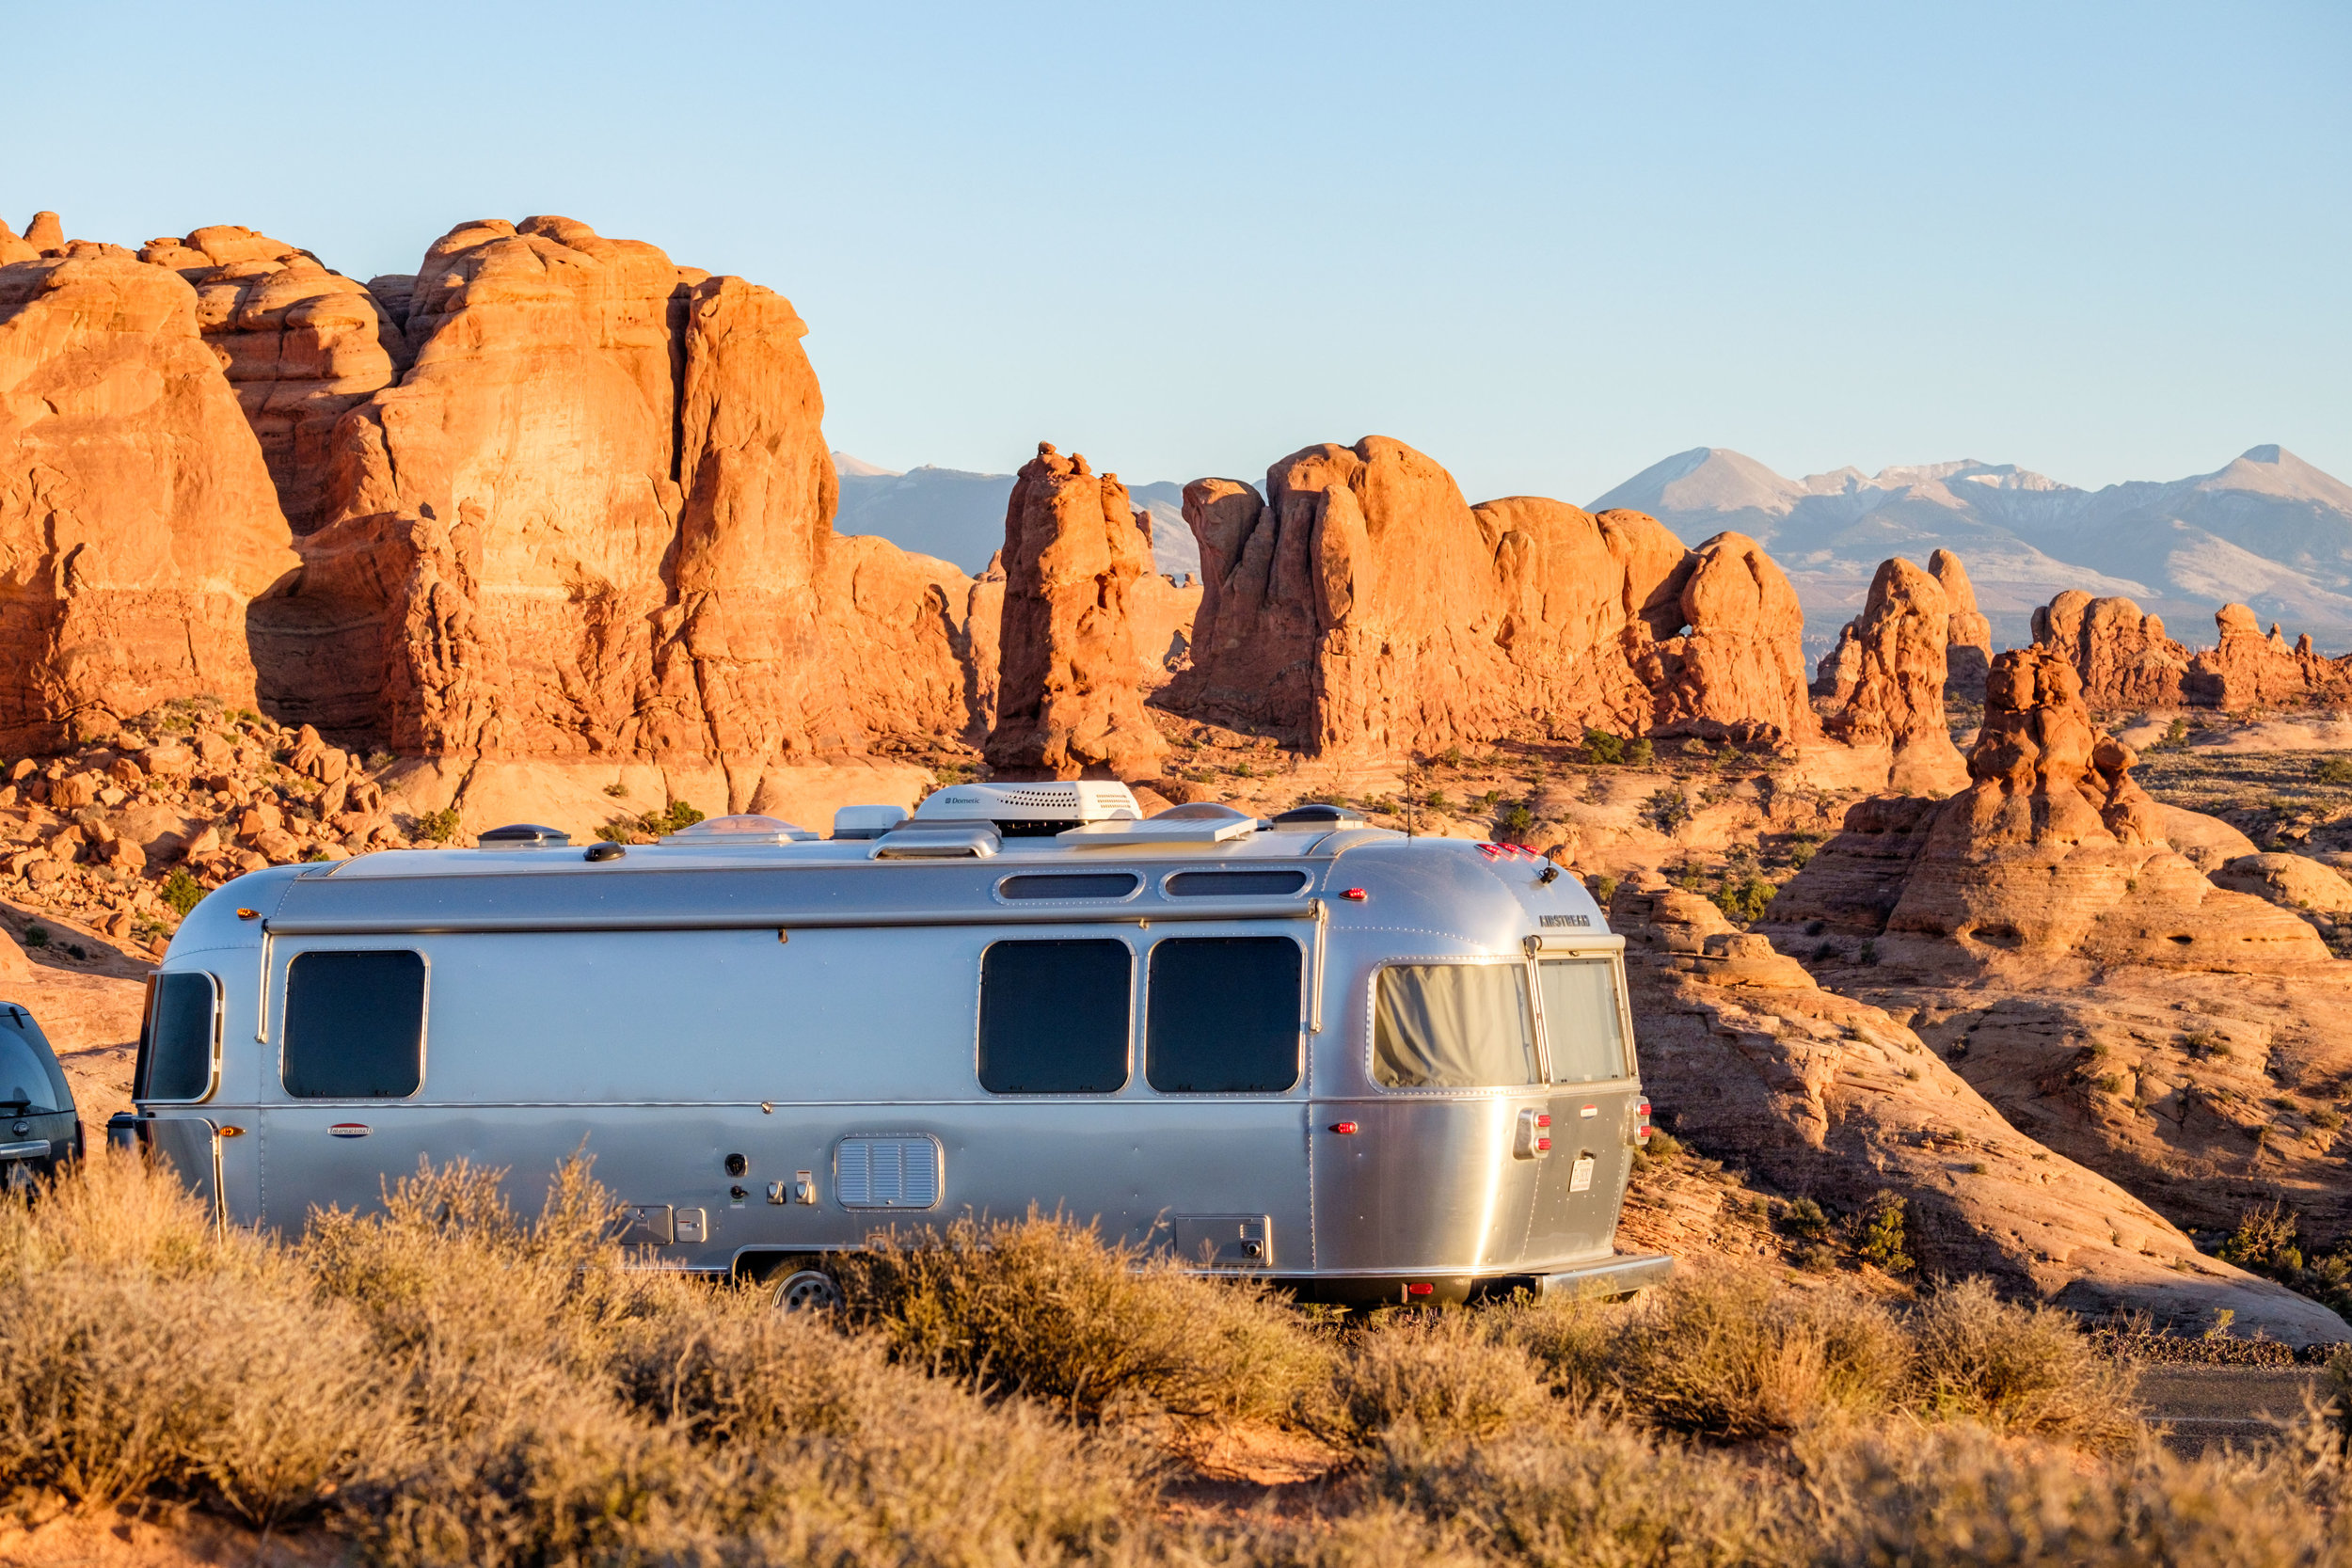 Wally the Airstream had no trouble trekking the scenic park road.